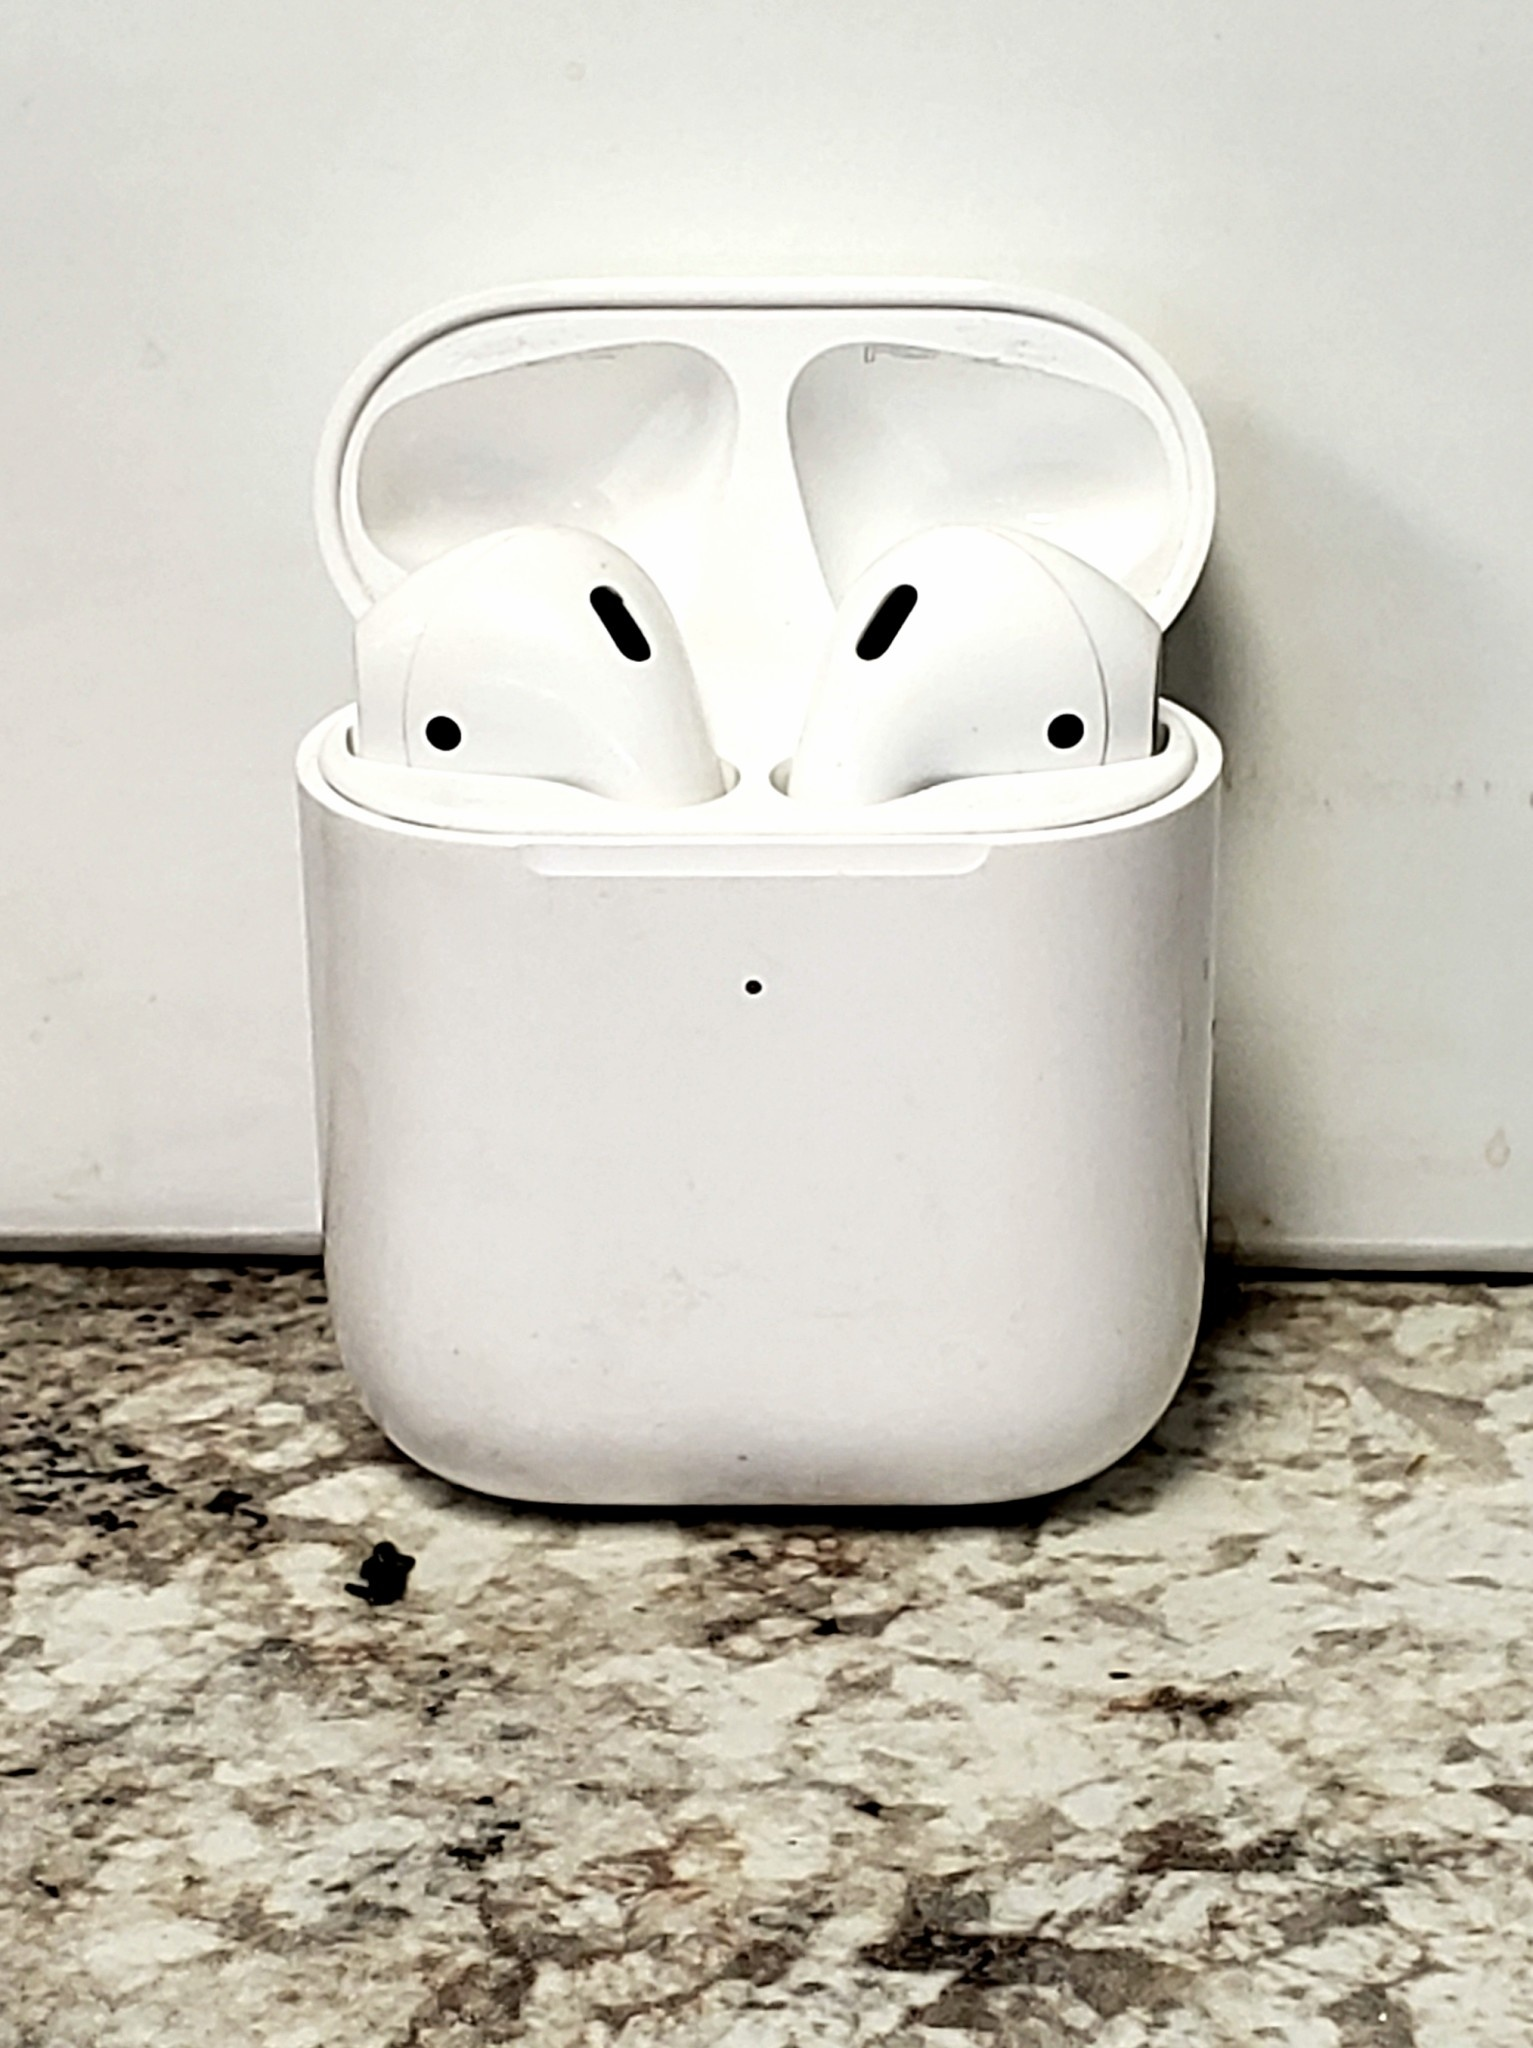 Apple Airpods 2 w/ Wireless Charging Case - Fair Condition